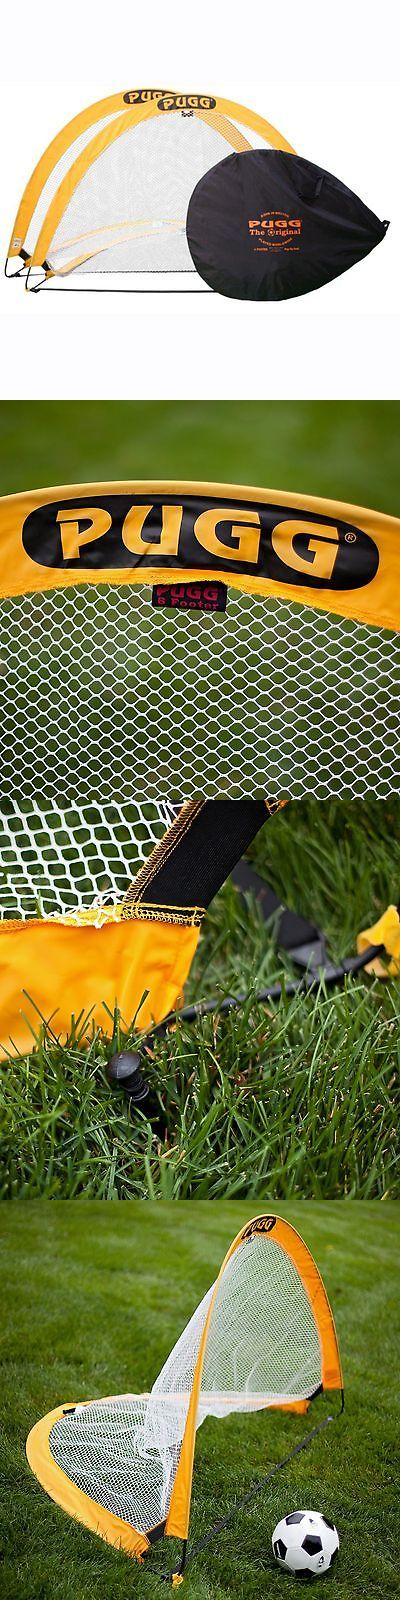 Goals and Nets 159180: 6 Ft. Pugg Soccer Goals, Pair Of Goals -> BUY IT NOW ONLY: $87.95 on eBay!